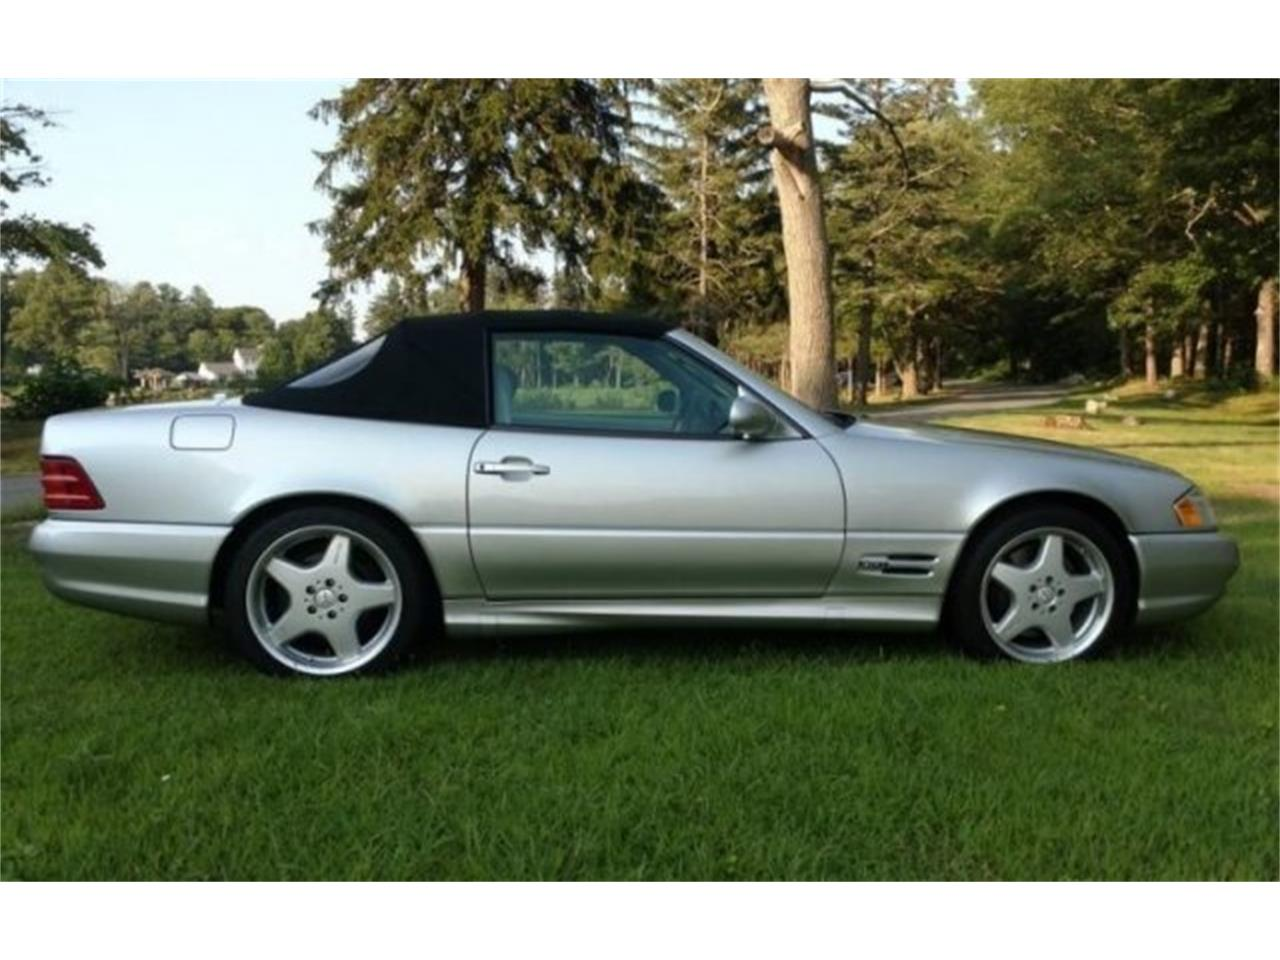 2000 mercedes benz sl500 for sale classiccars com cc 1200888 2000 mercedes benz sl500 for sale